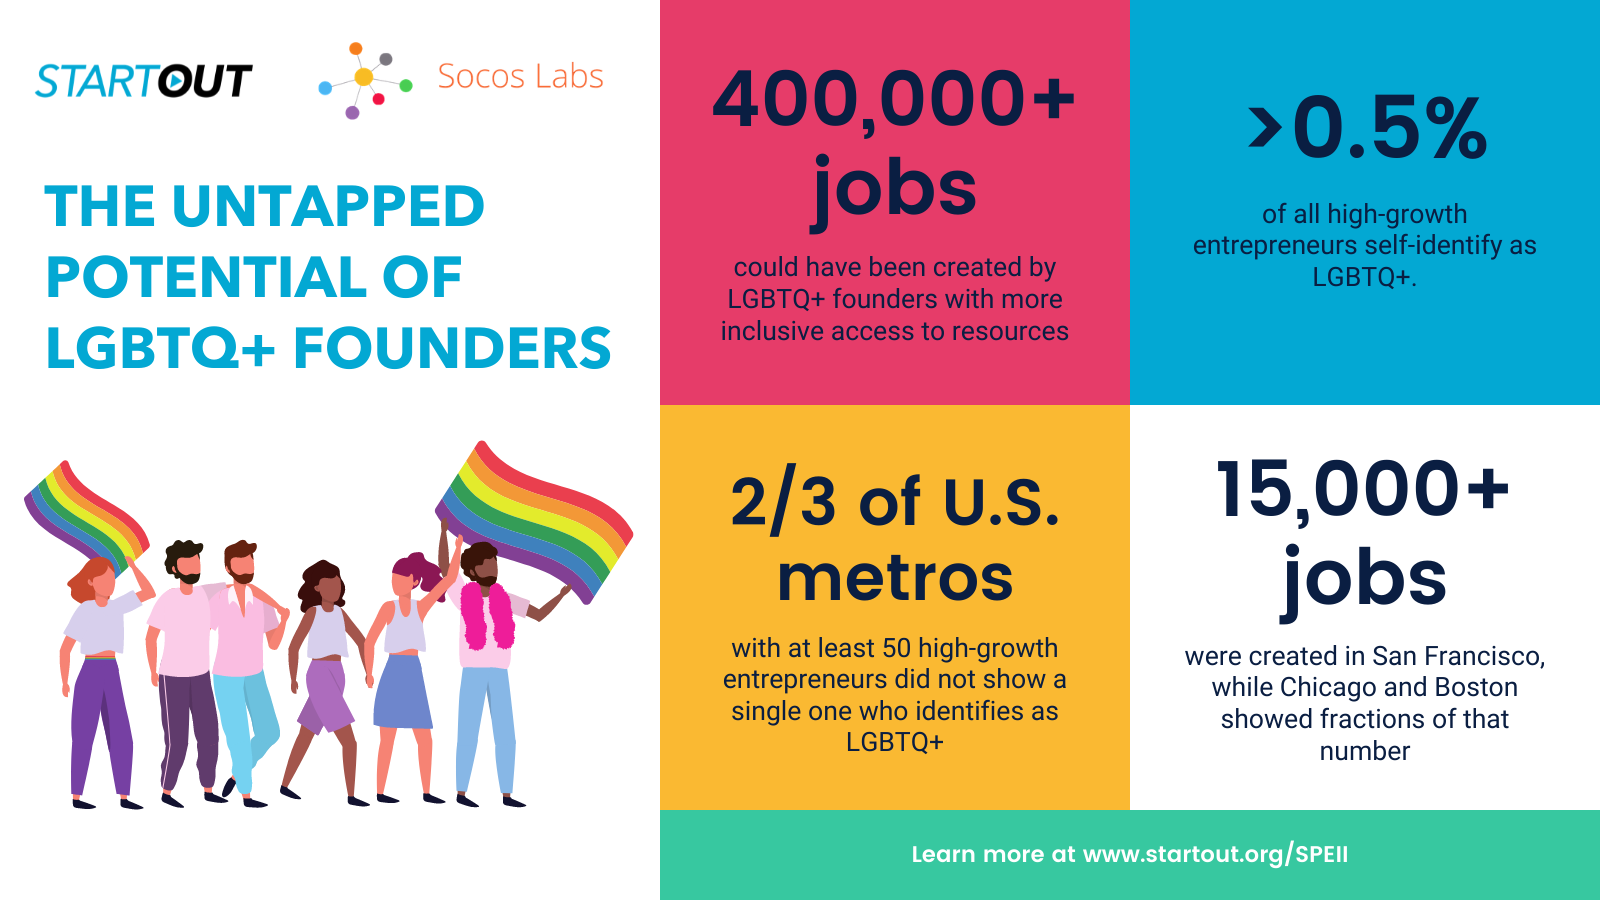 untapped potential of LGBTQ+ founders infographic